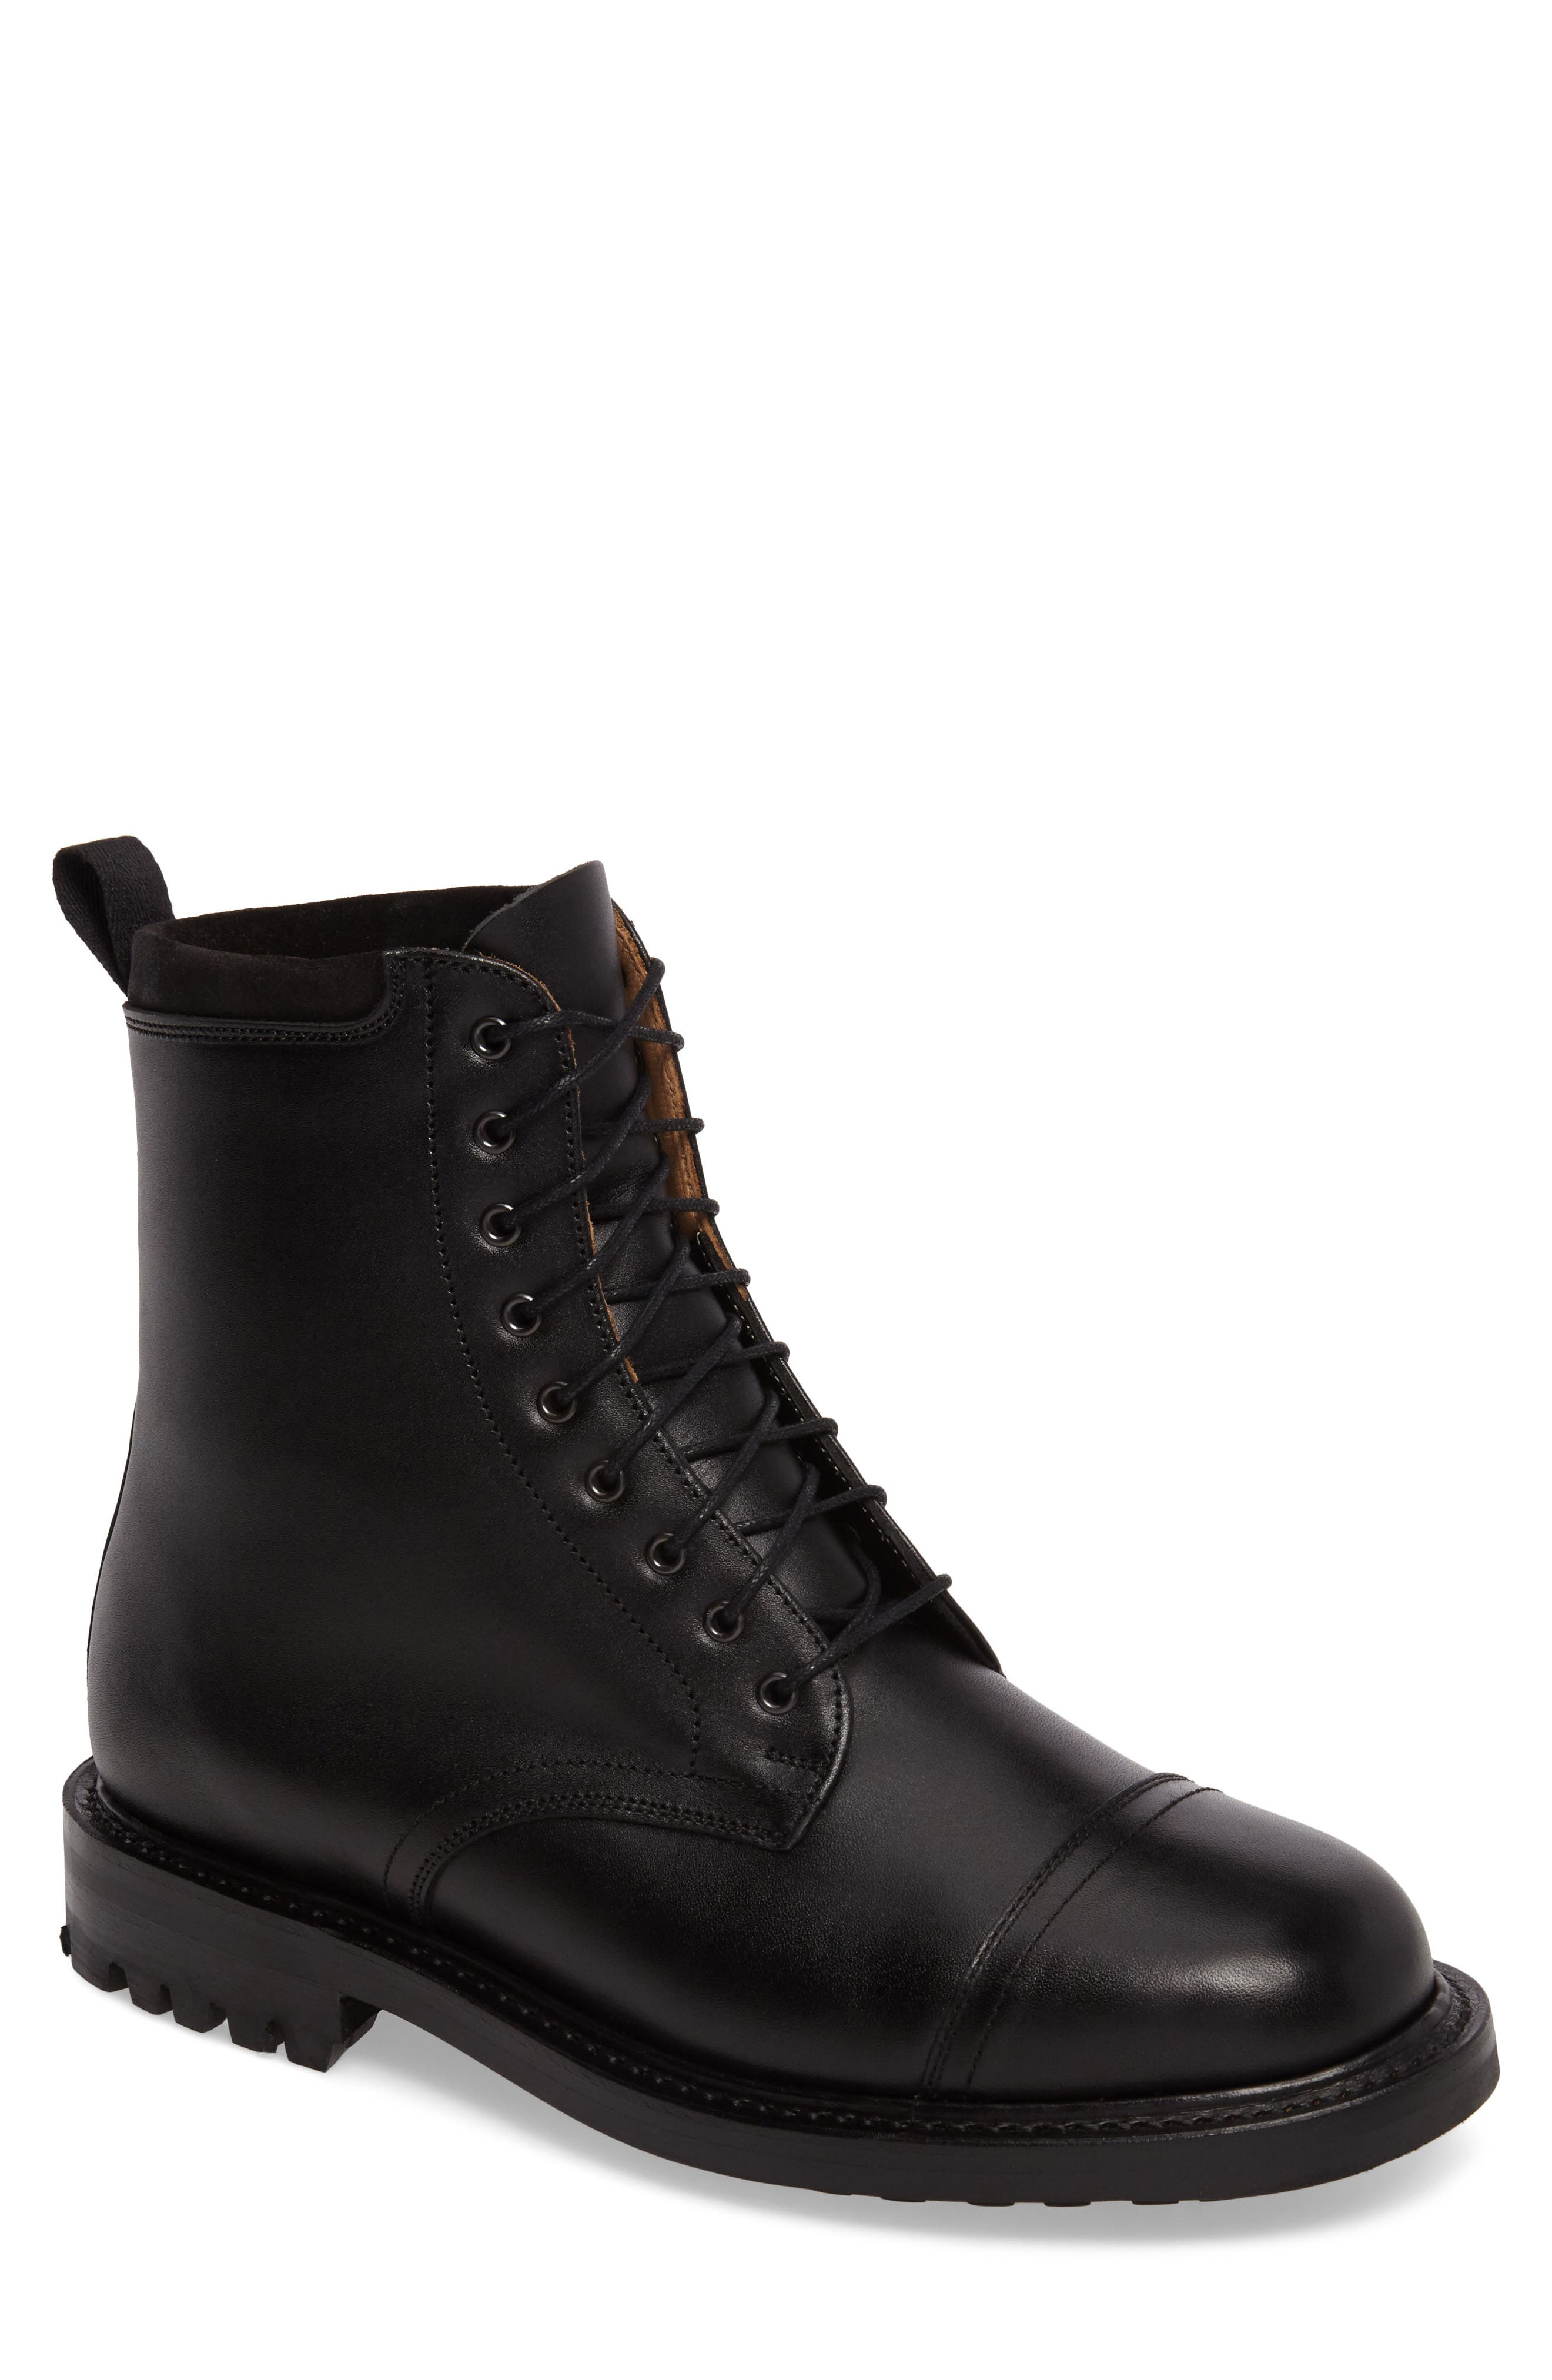 CLARKS<SUP>®</SUP> Clarks Craftsmaster III Cap Toe Boot, Main, color, BLACK LEATHER